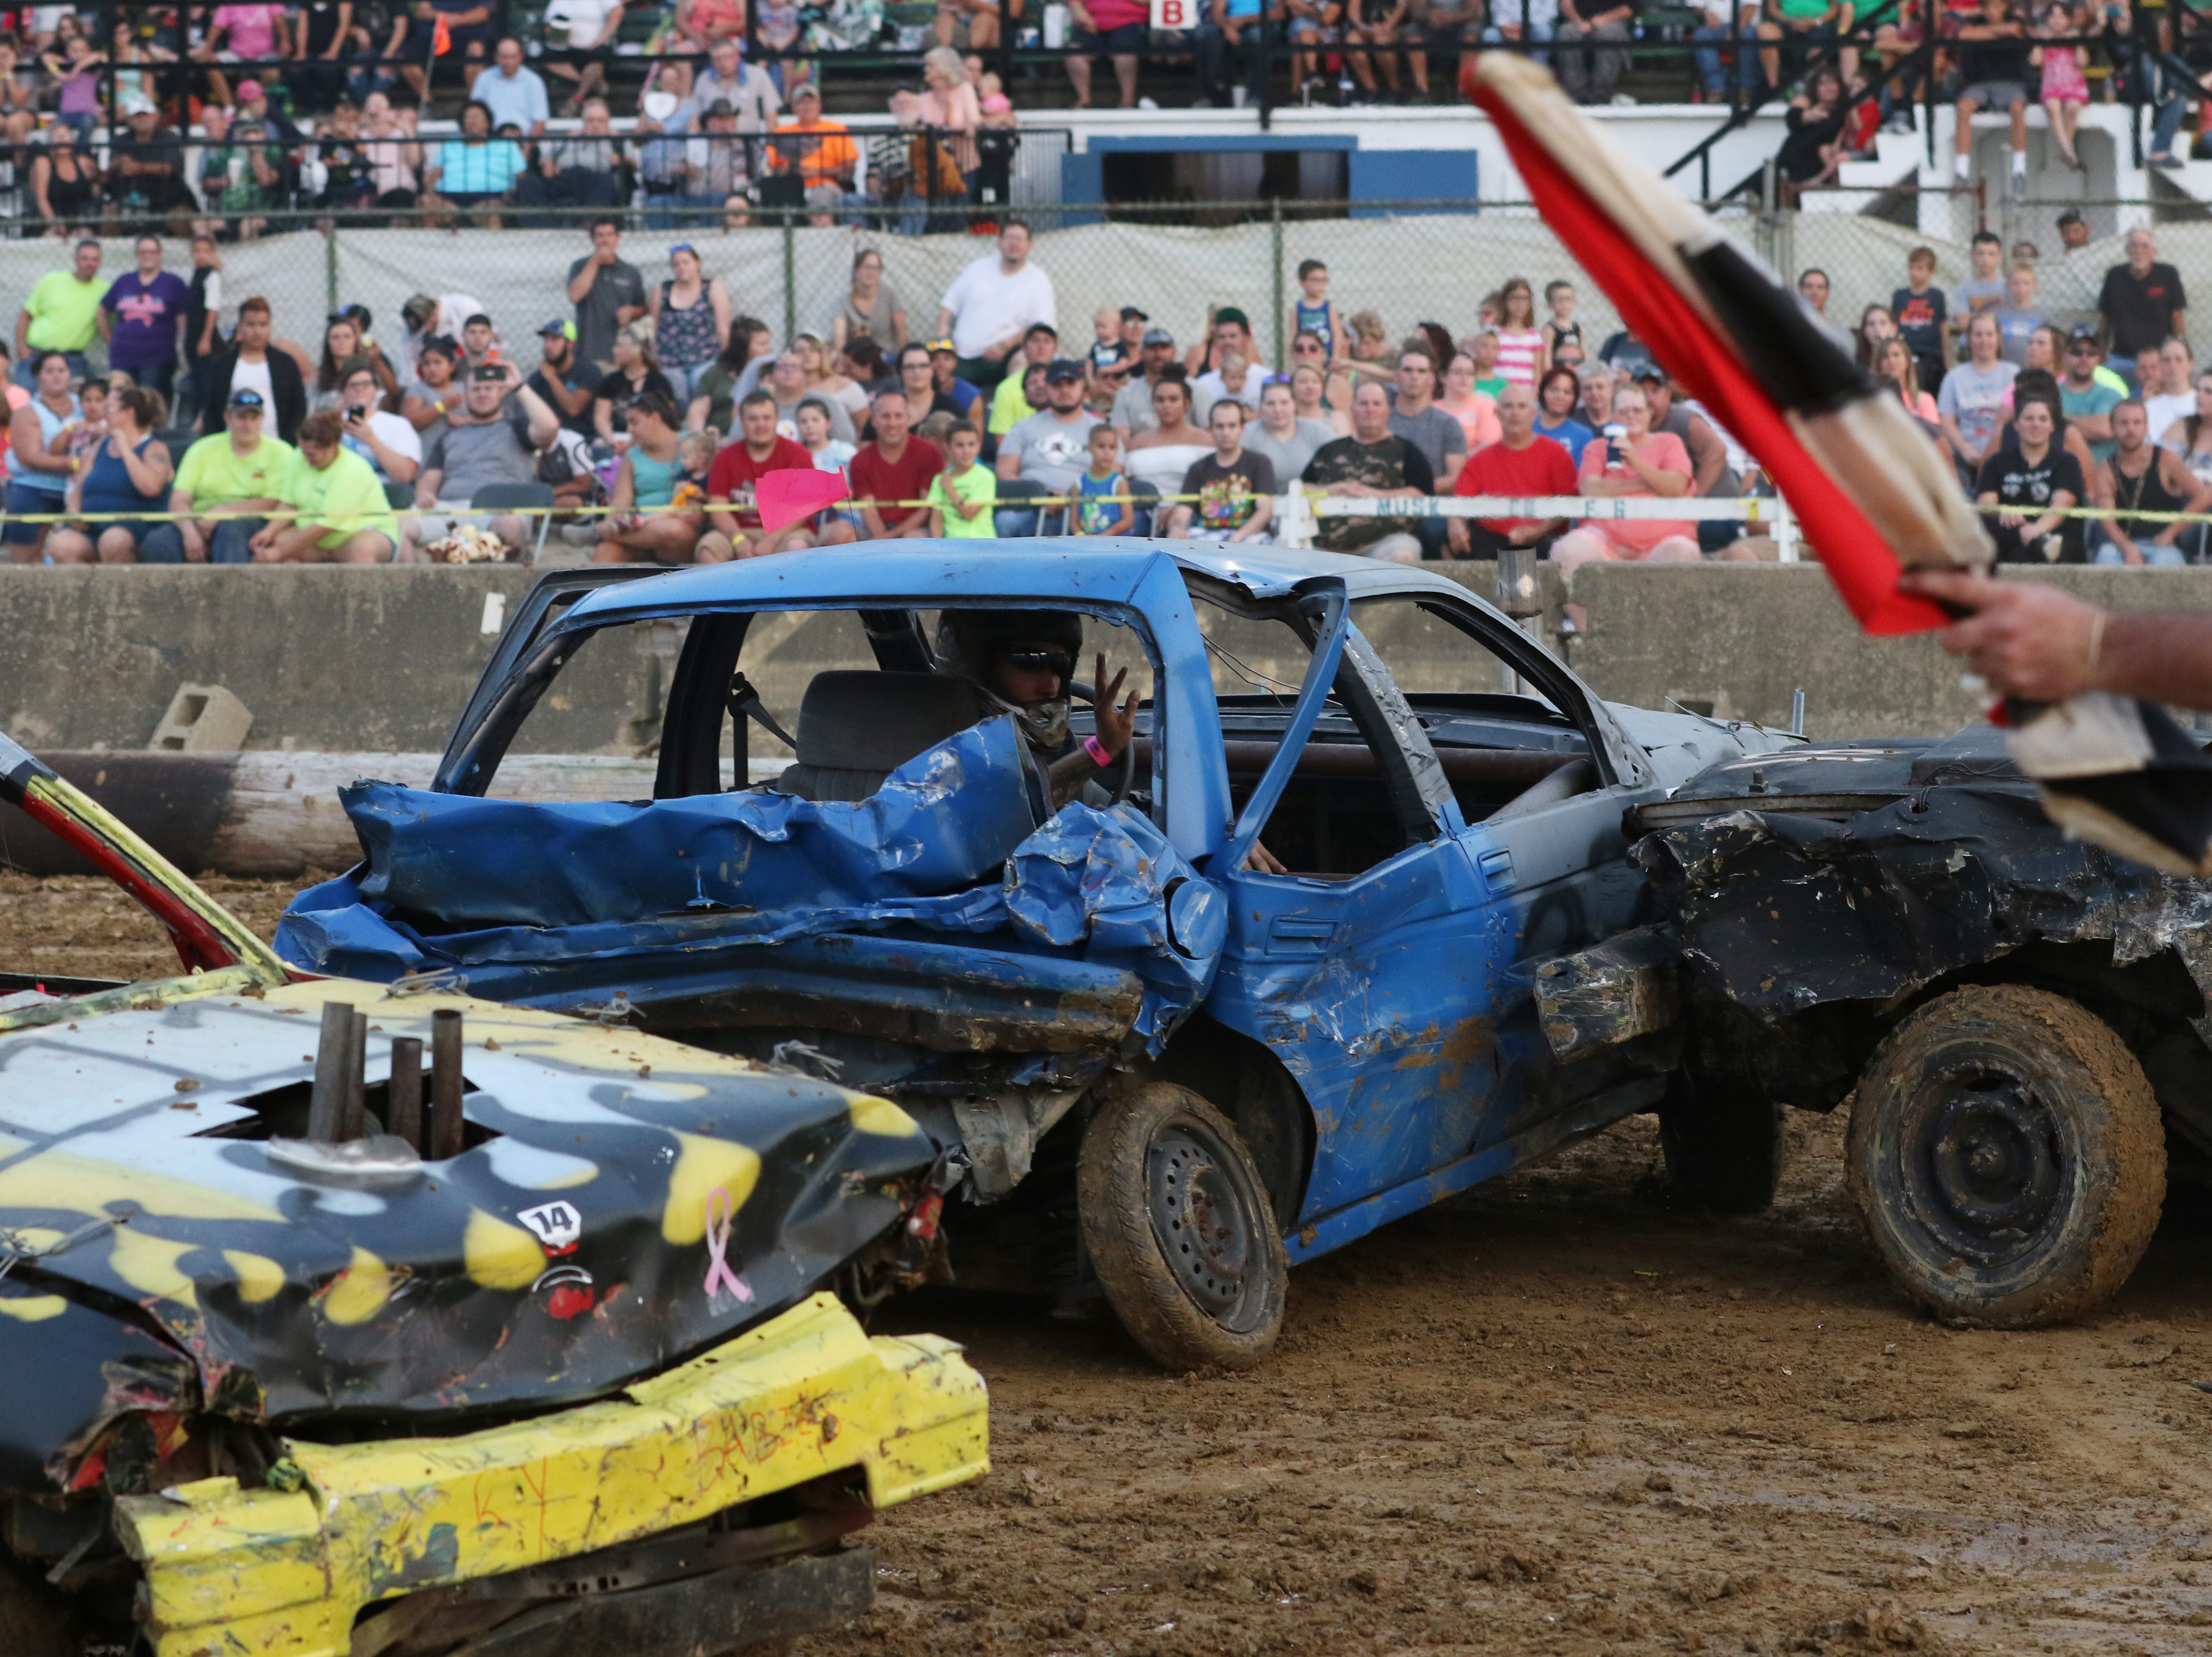 Scott Cordle gets hit during the Sarge and Sons Demolition Derby at the Muskingum County Fair on Tuesday.